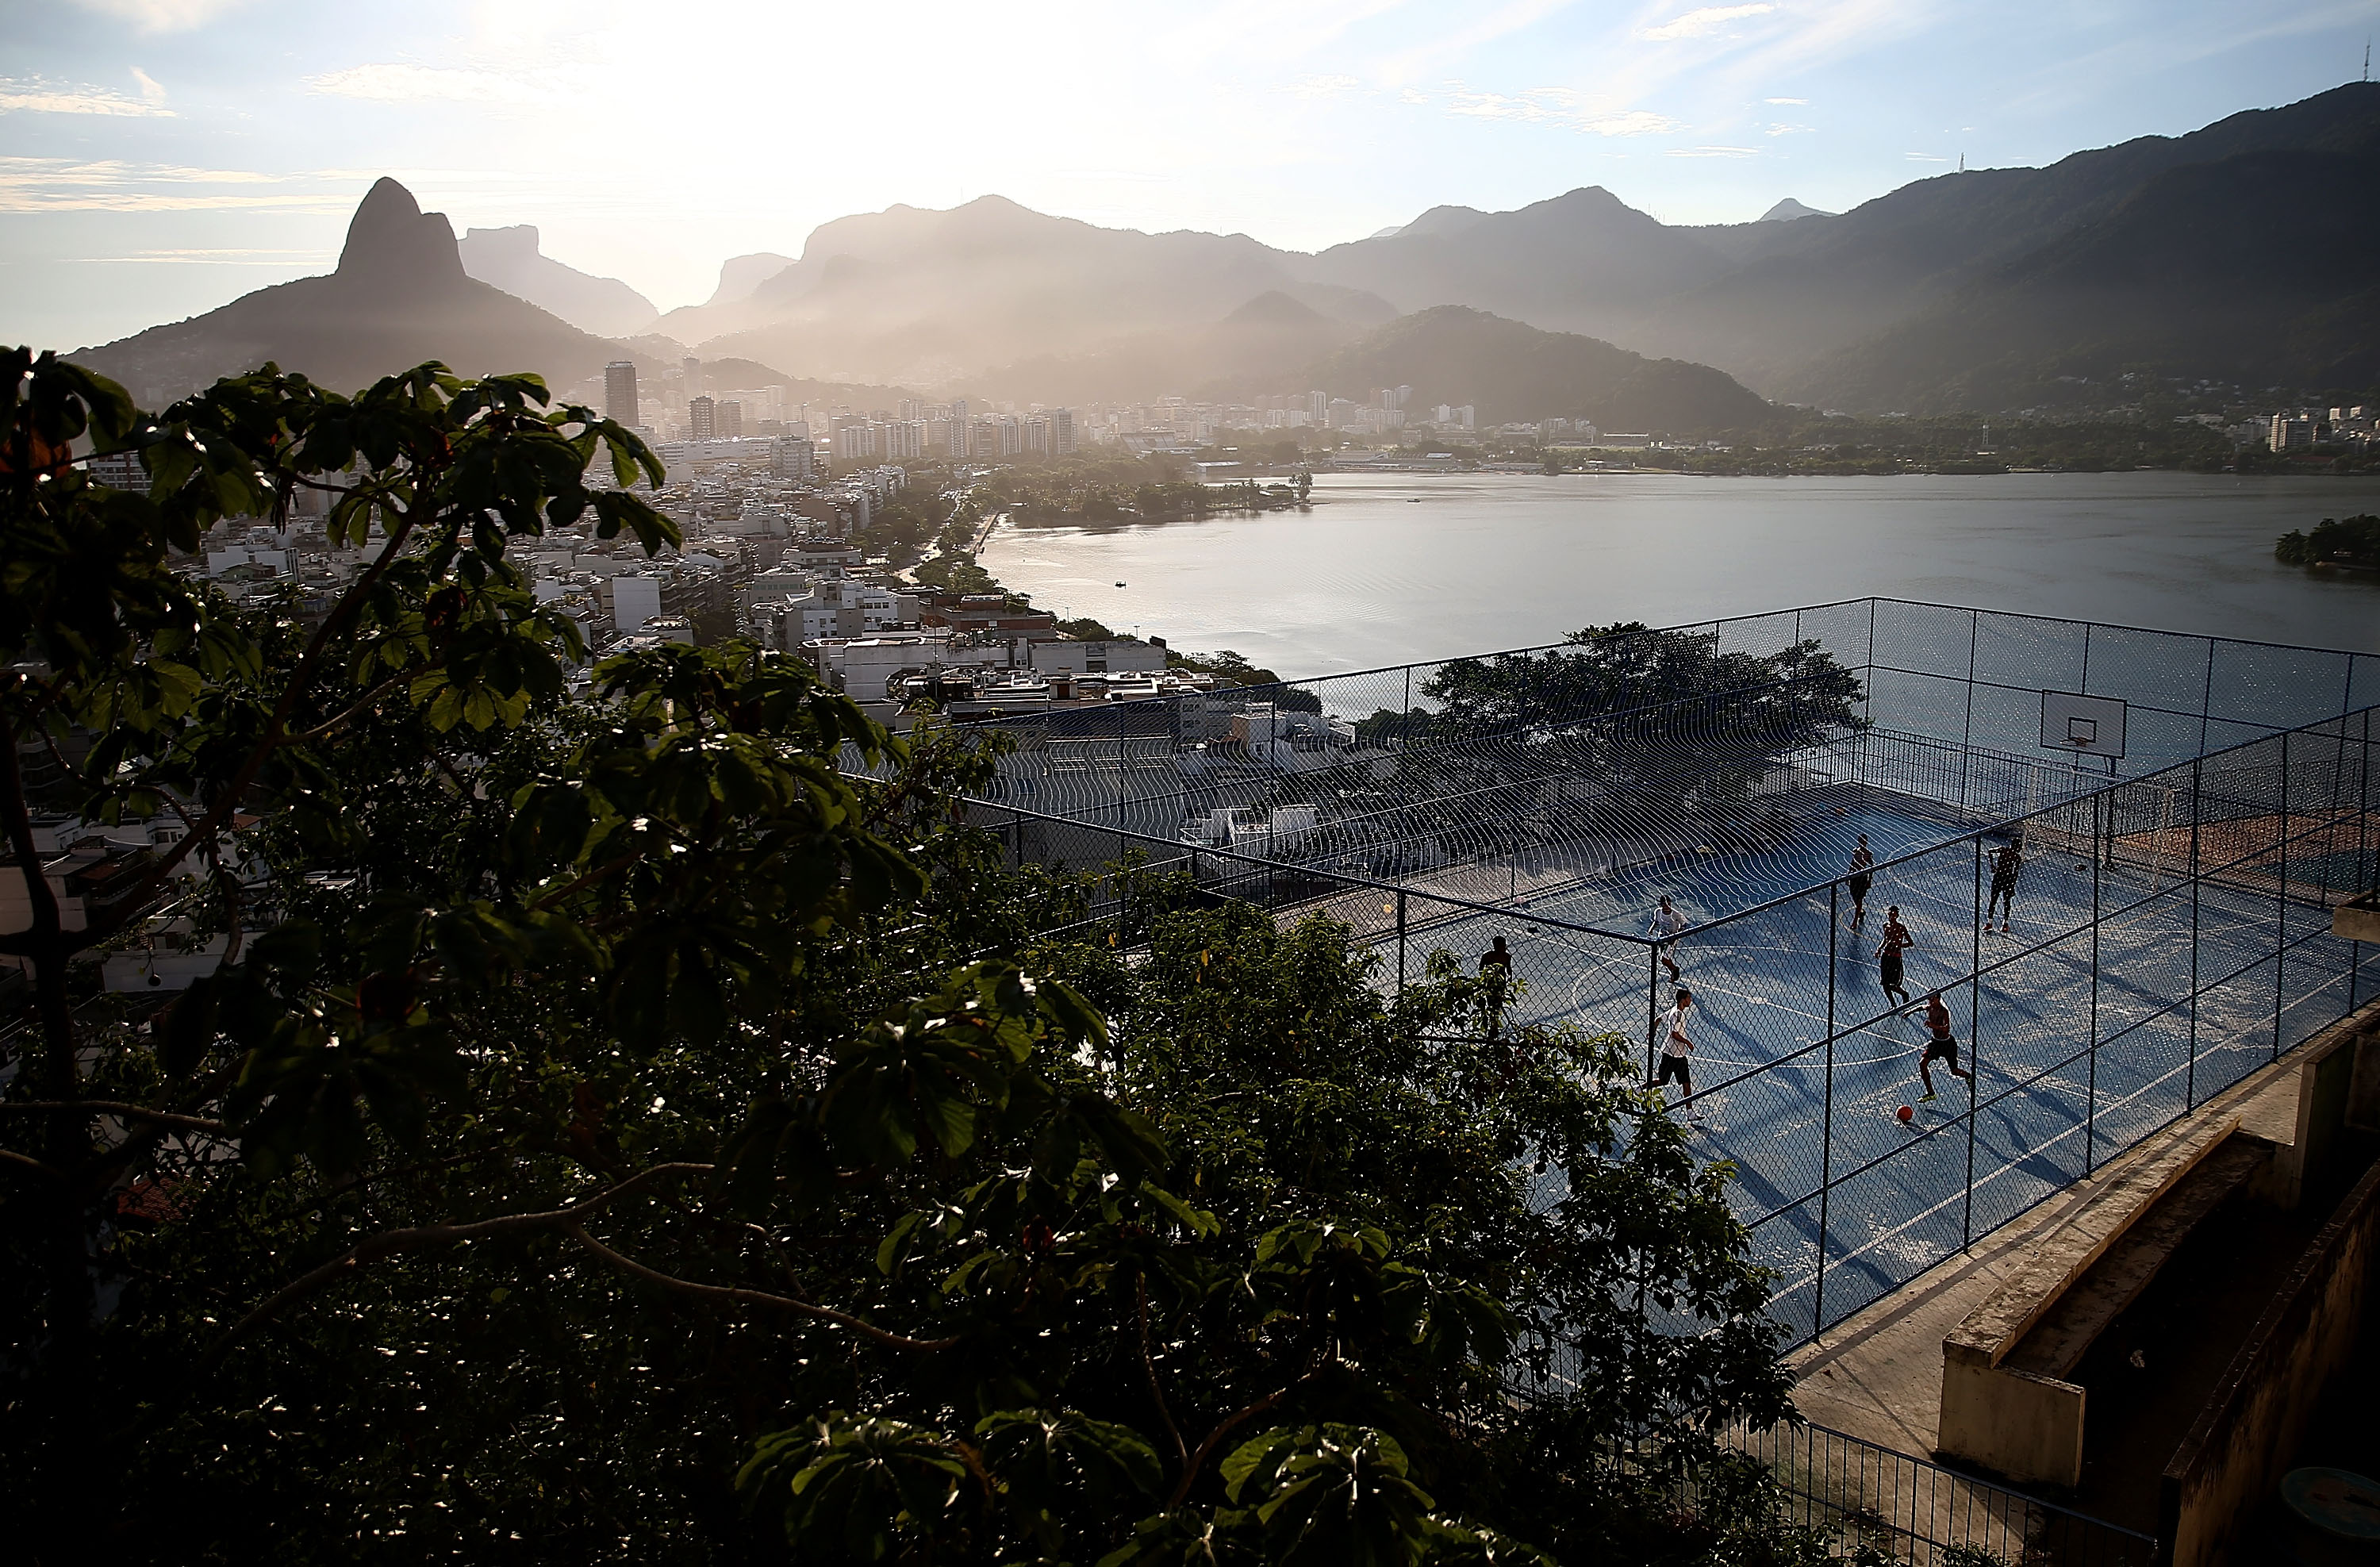 Revelers play soccer in the Cantagalo shantytown community next to neighboring Pavao-Pavaozinho on February 22, 2014 in Rio de Janeiro.